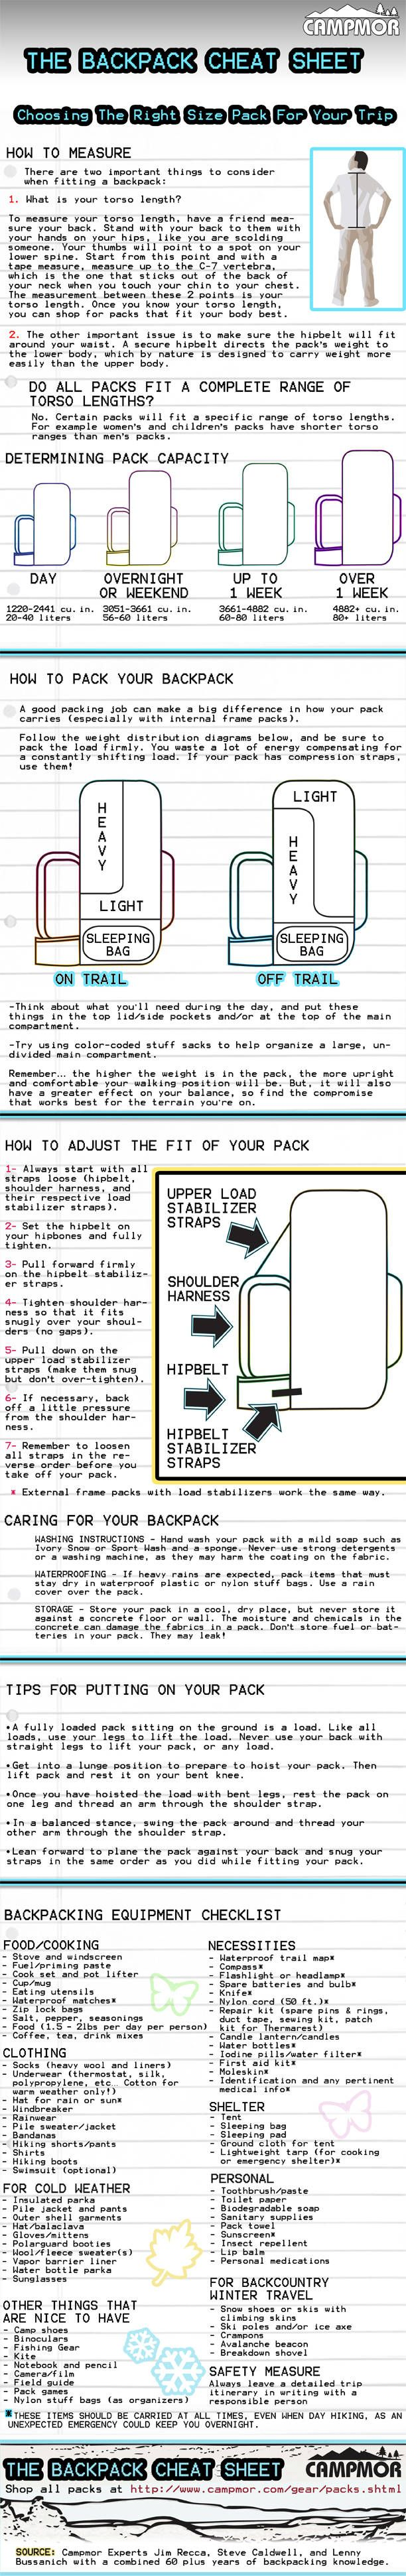 Backpack Cheat Sheet by Campmor